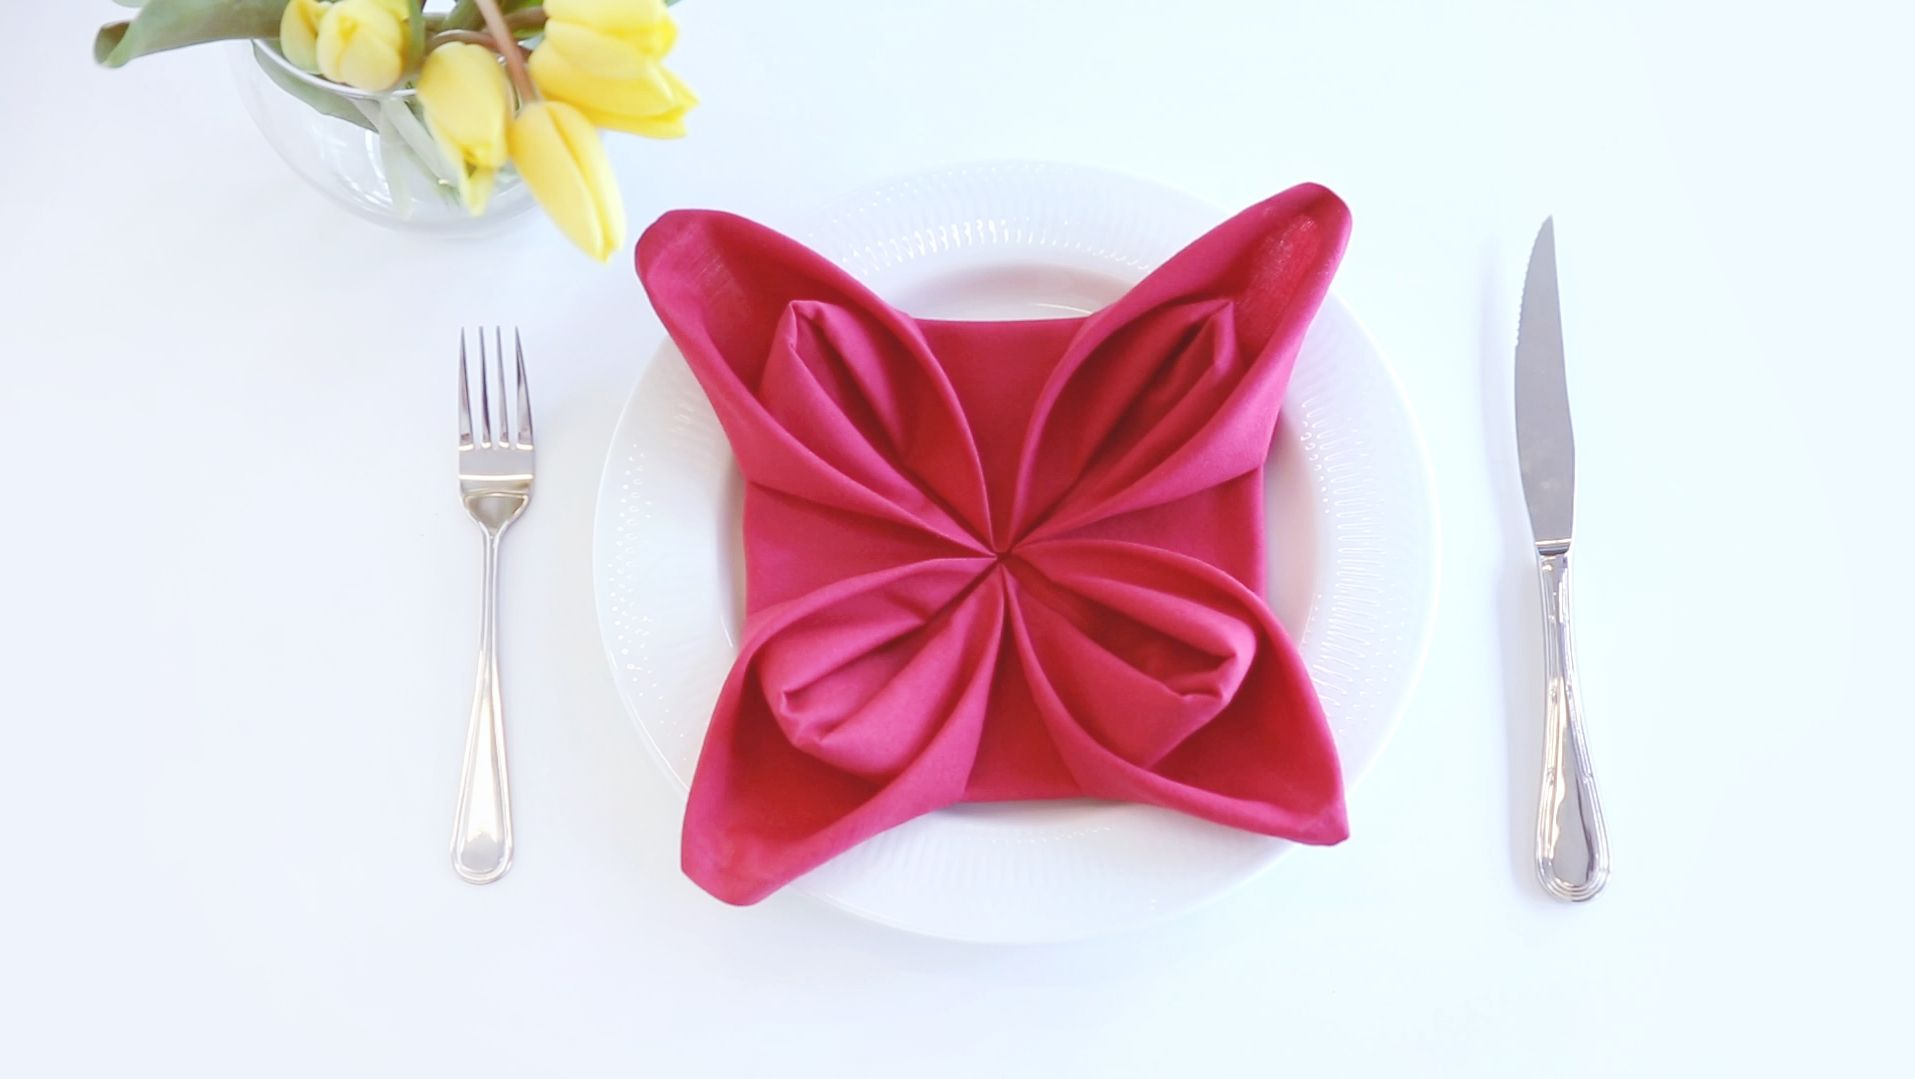 How To Fold A Flower Napkin